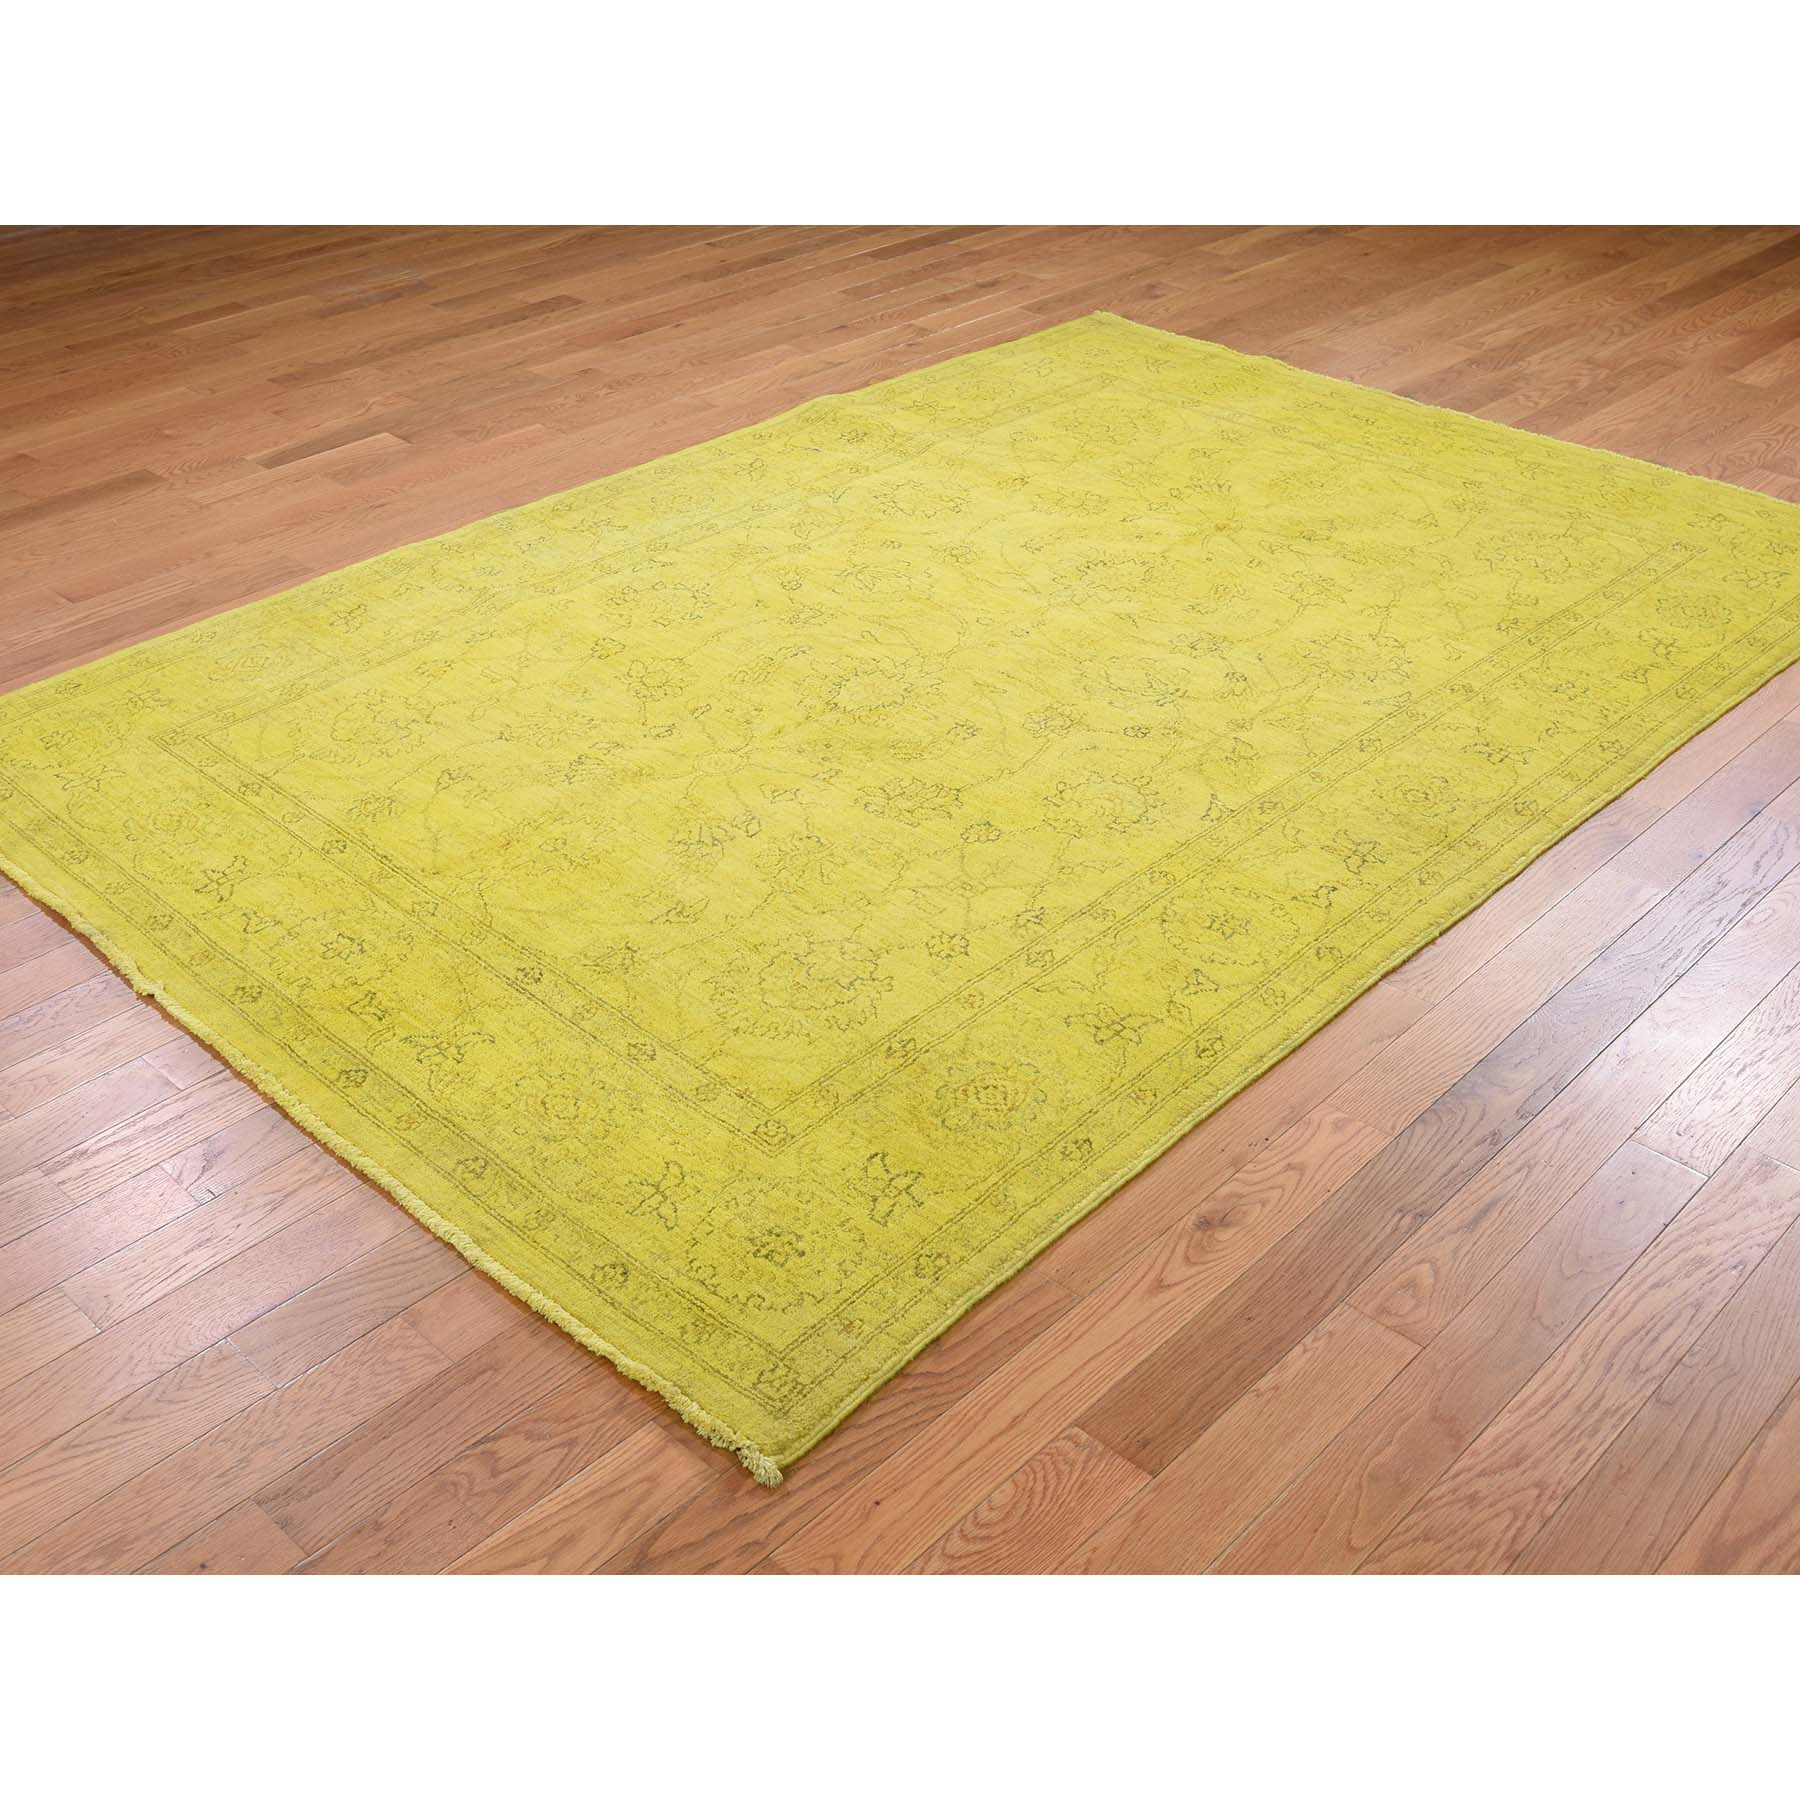 5-8 x8-2  Overdyed Mahal Not Worn Yellow Hand-Knotted Pure Wool Oriental Rug